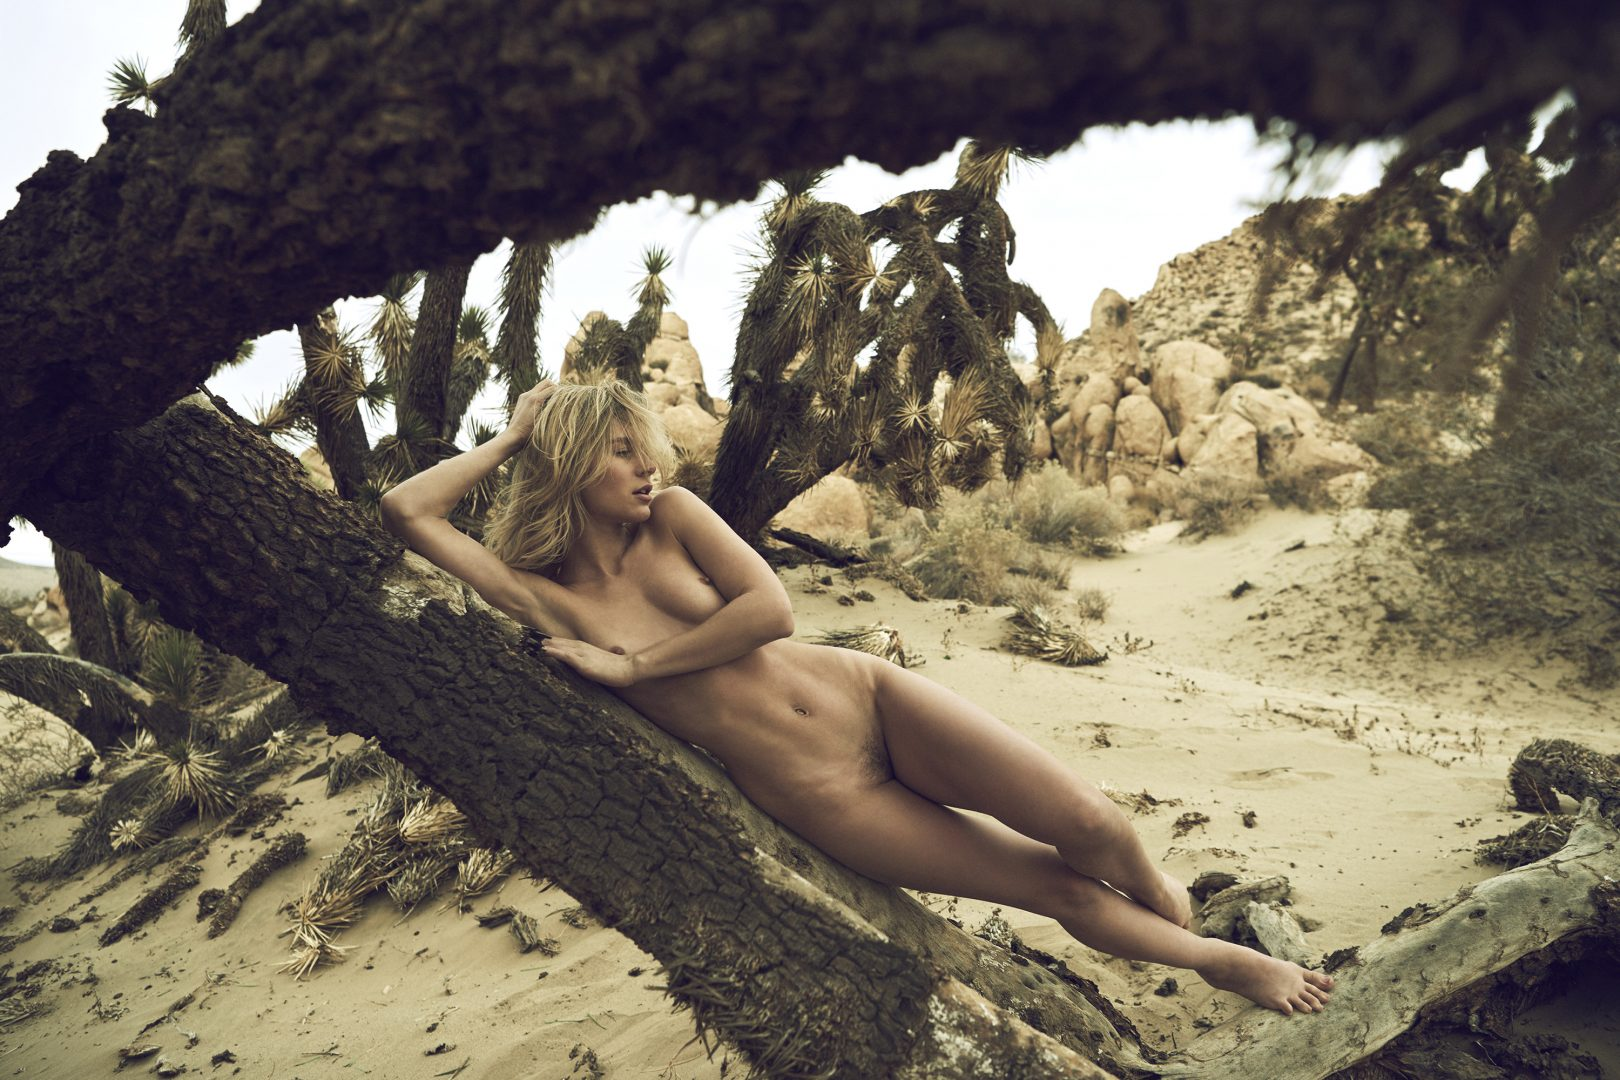 Naked girl lying on Joshua tree in the desert by Stefan Rappo